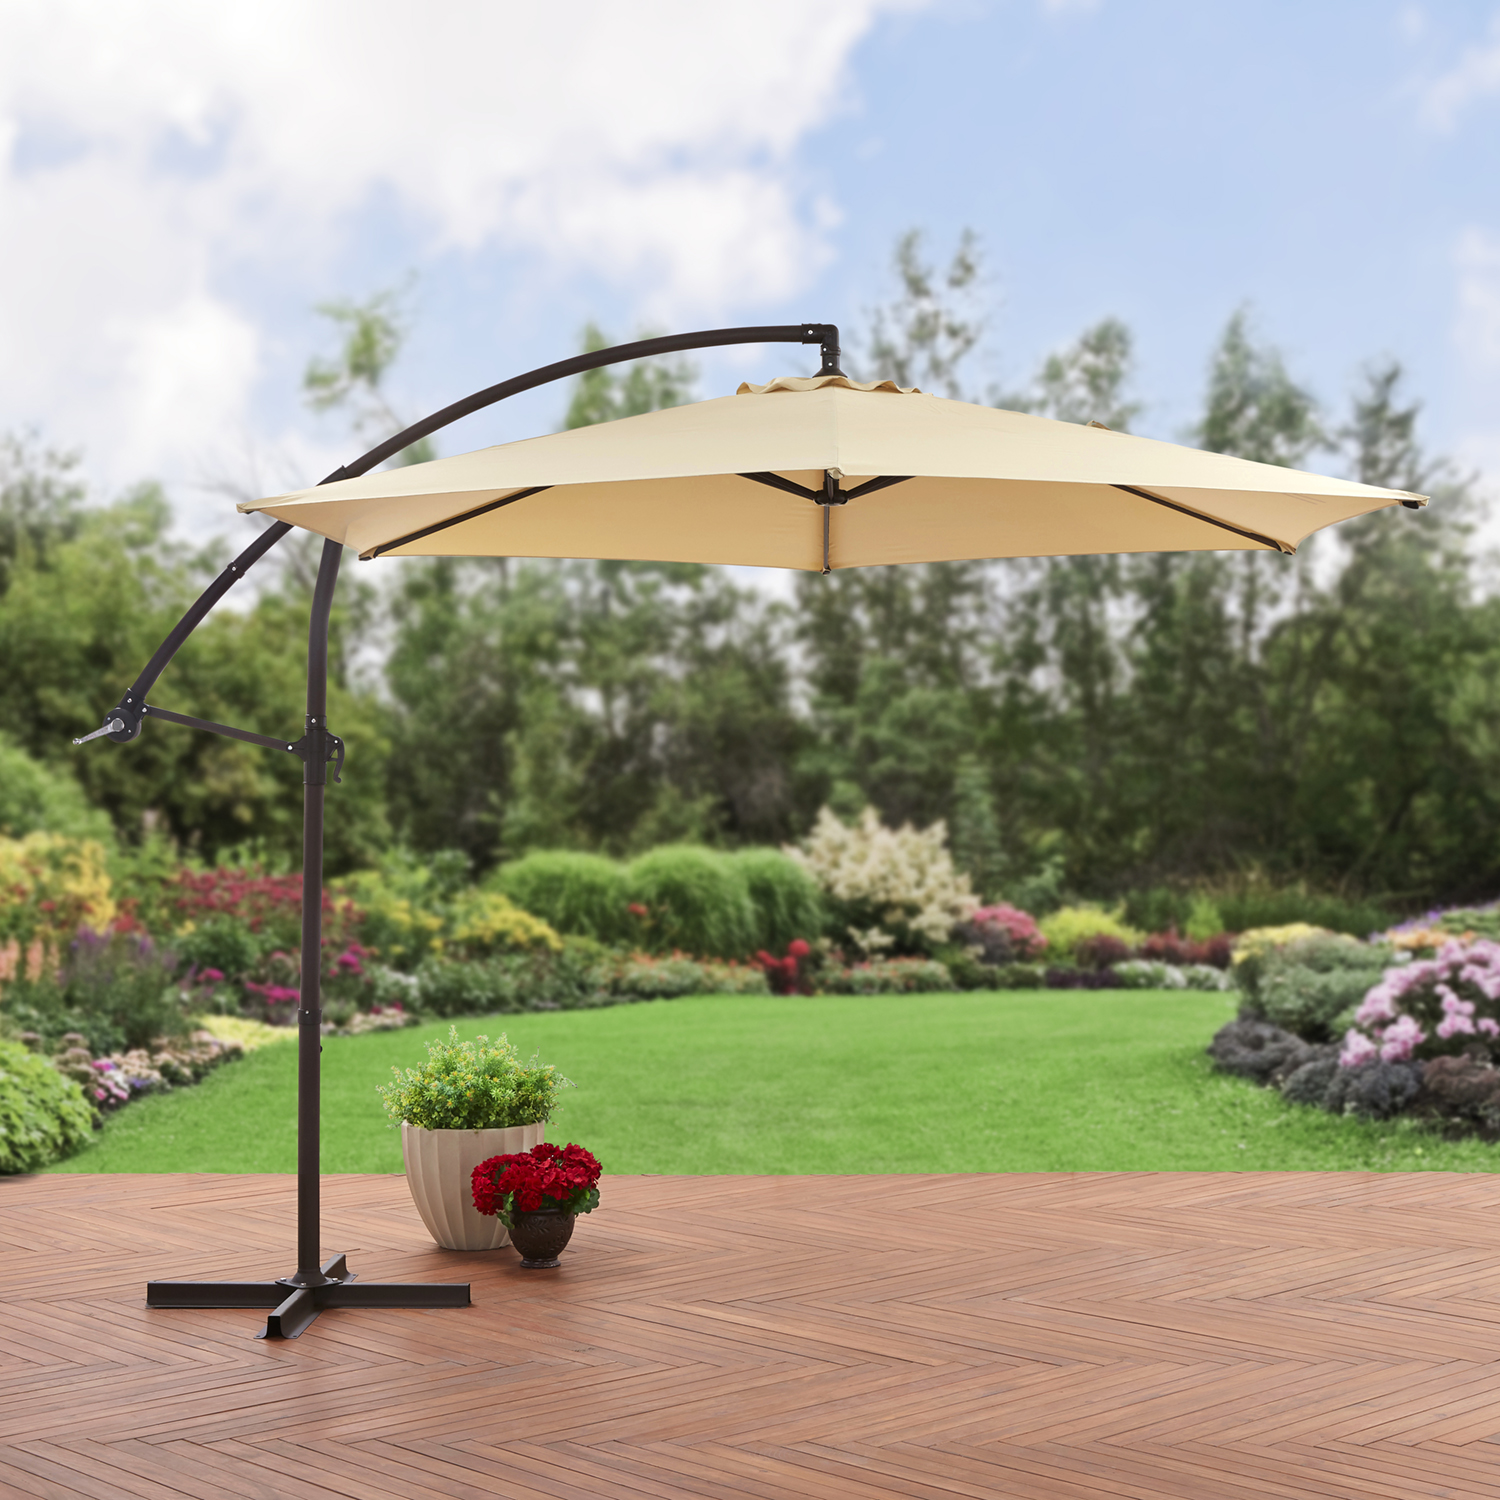 Mainstays 10' Steel Offset Patio Umbrella, Tan by NINGBO EVERLUCK OUTDOOR PRODUCTS MANUFACTING CO LTD